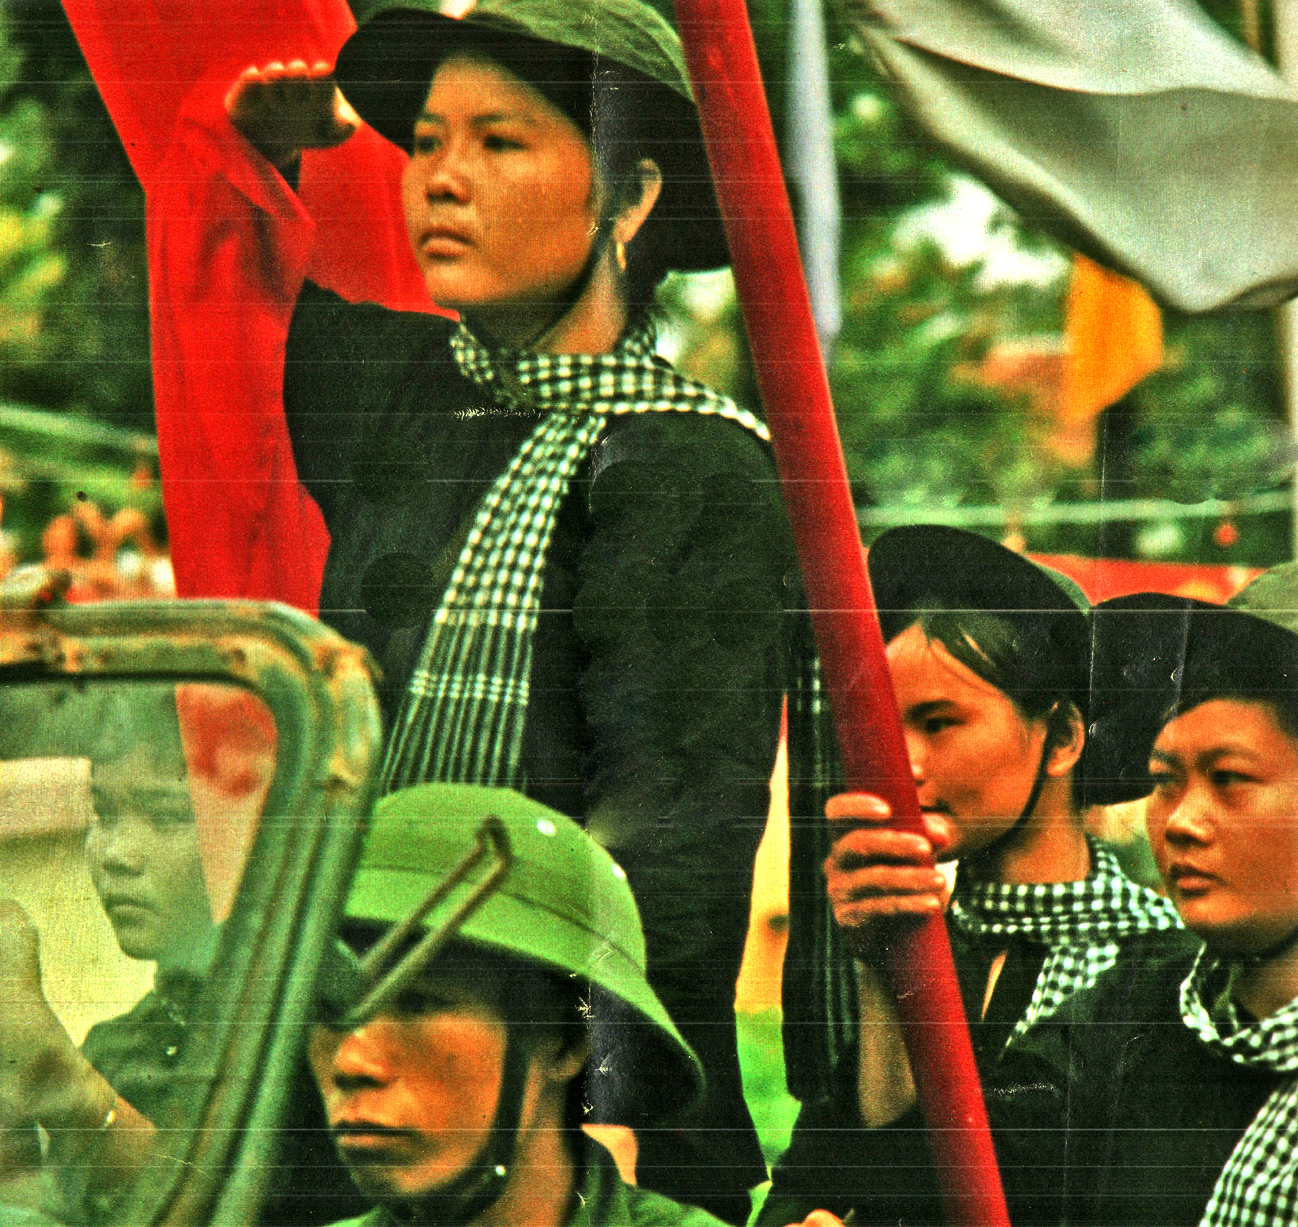 April 30, 1975 – Morning After Saigon – Amid Chaos, A New Day And A New Country